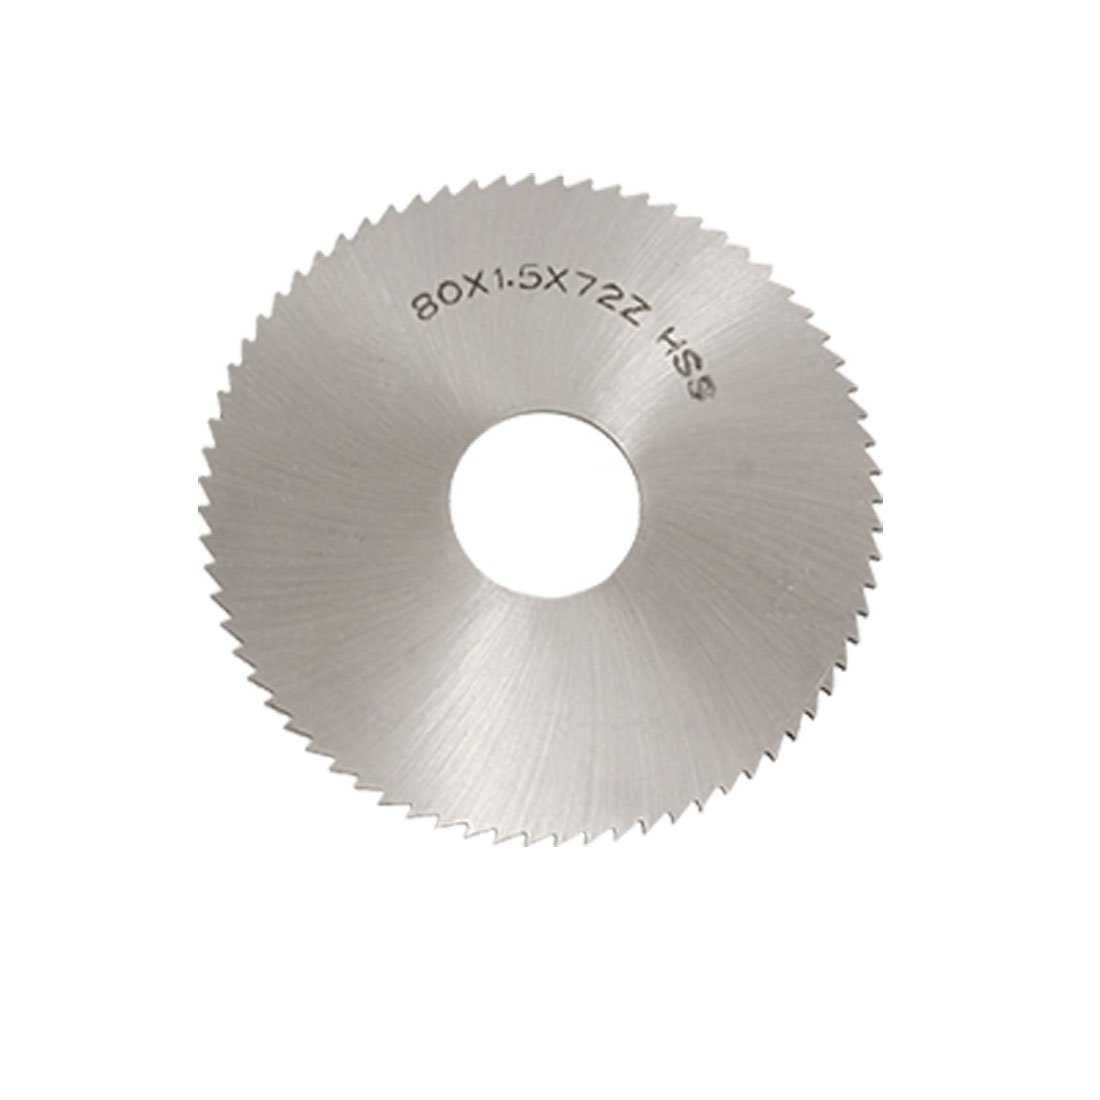 80 x 1.5 x 72 Cut HSS Groove Circle Saw Mill Milling Cutter